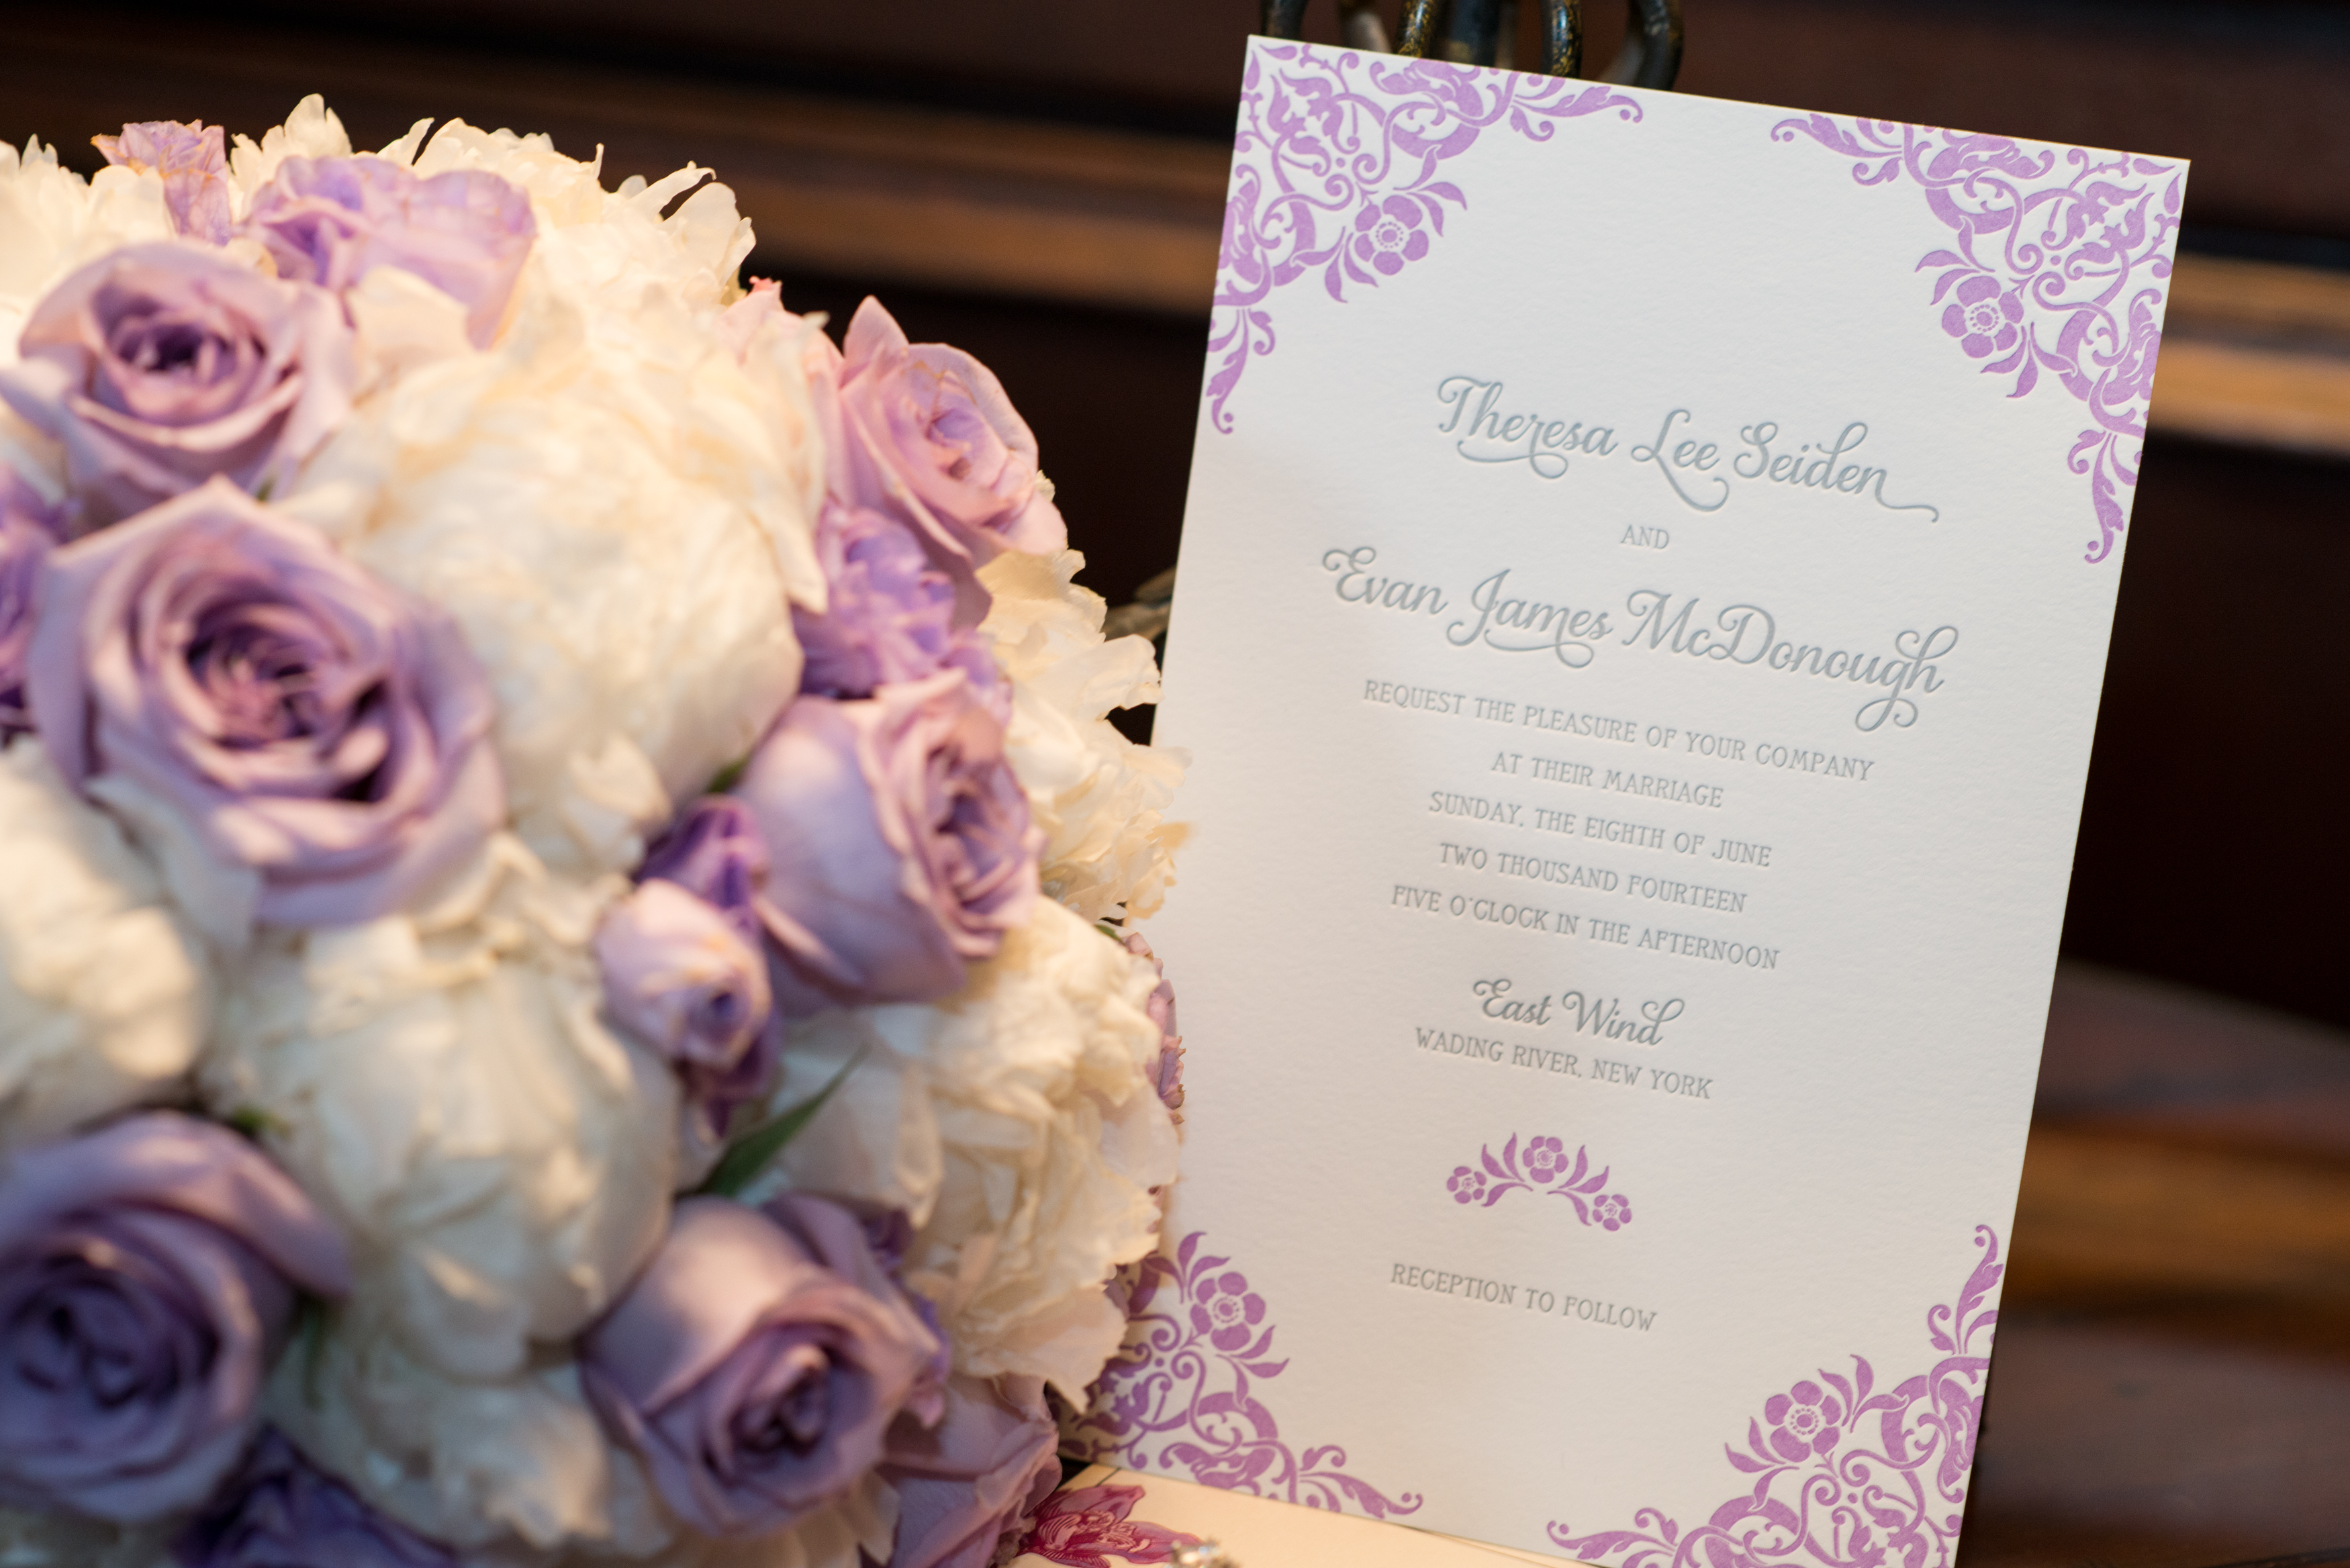 """Promise"" in Lavender by Designer's Fine Promise, Lavender and Gray Letterpress Invitation with Floral Corner Details on Soft White Cotton Paper"